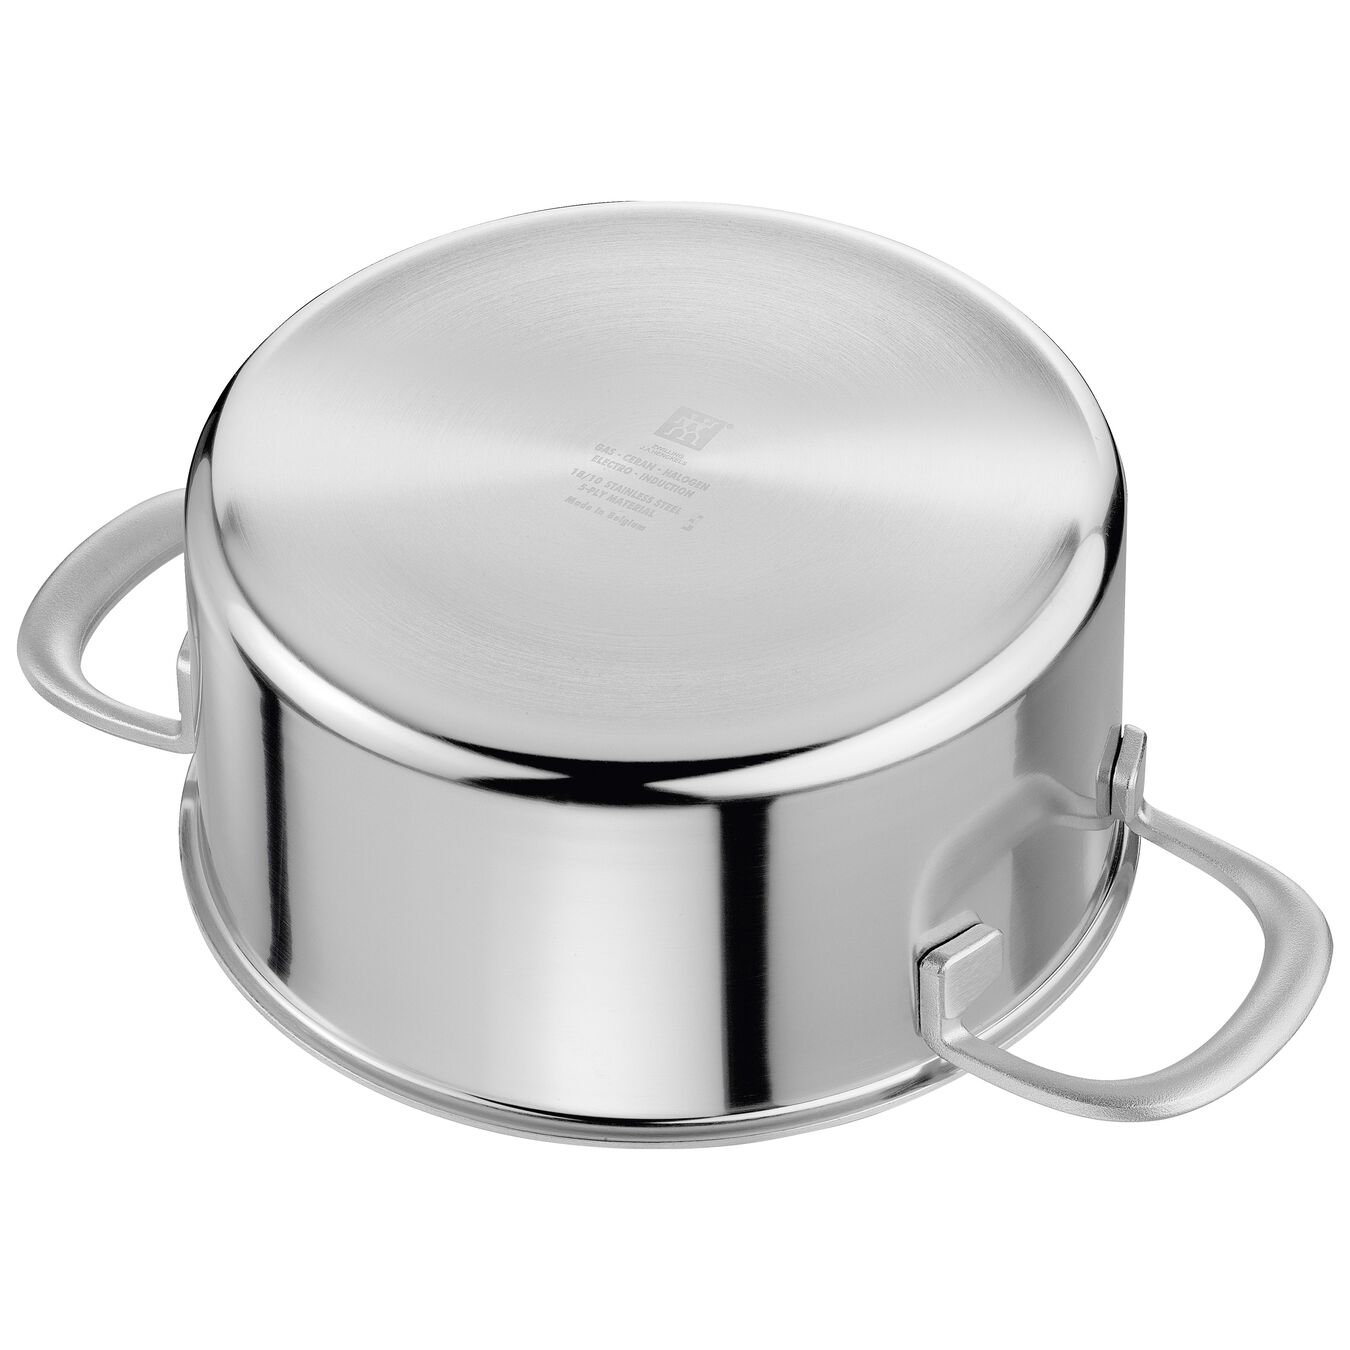 5,25 l 18/10 Stainless Steel Faitout,,large 5